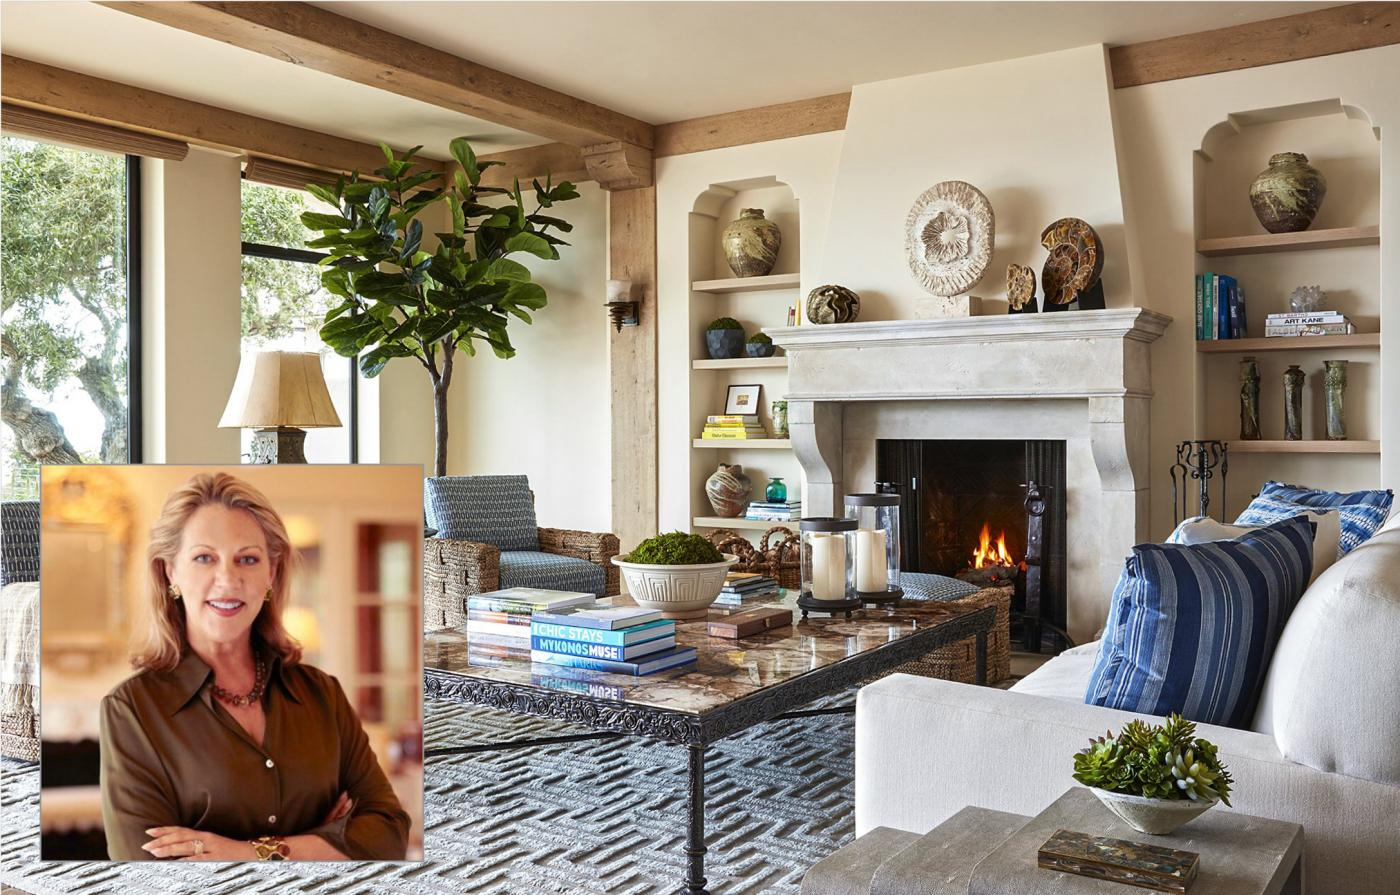 Suzanne Tucker's Pro Tips for Shopping and Decorating with Art & Antiques